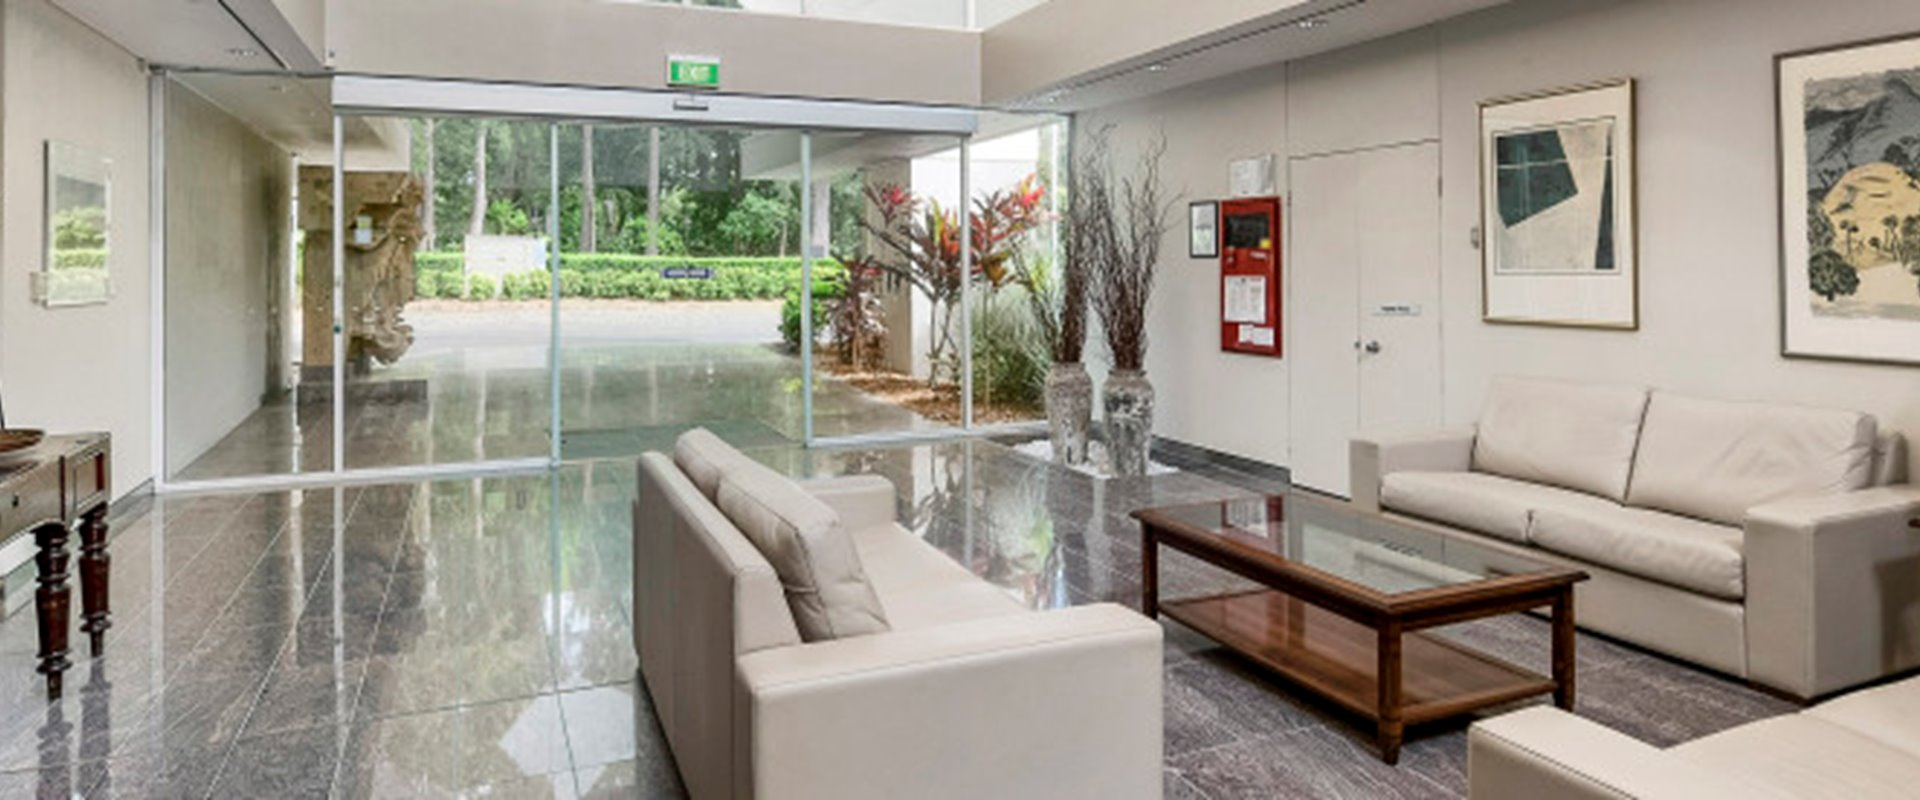 Sydney Conference & Training Centre | Conference Venues Sydney | Conference Venues New South Wales